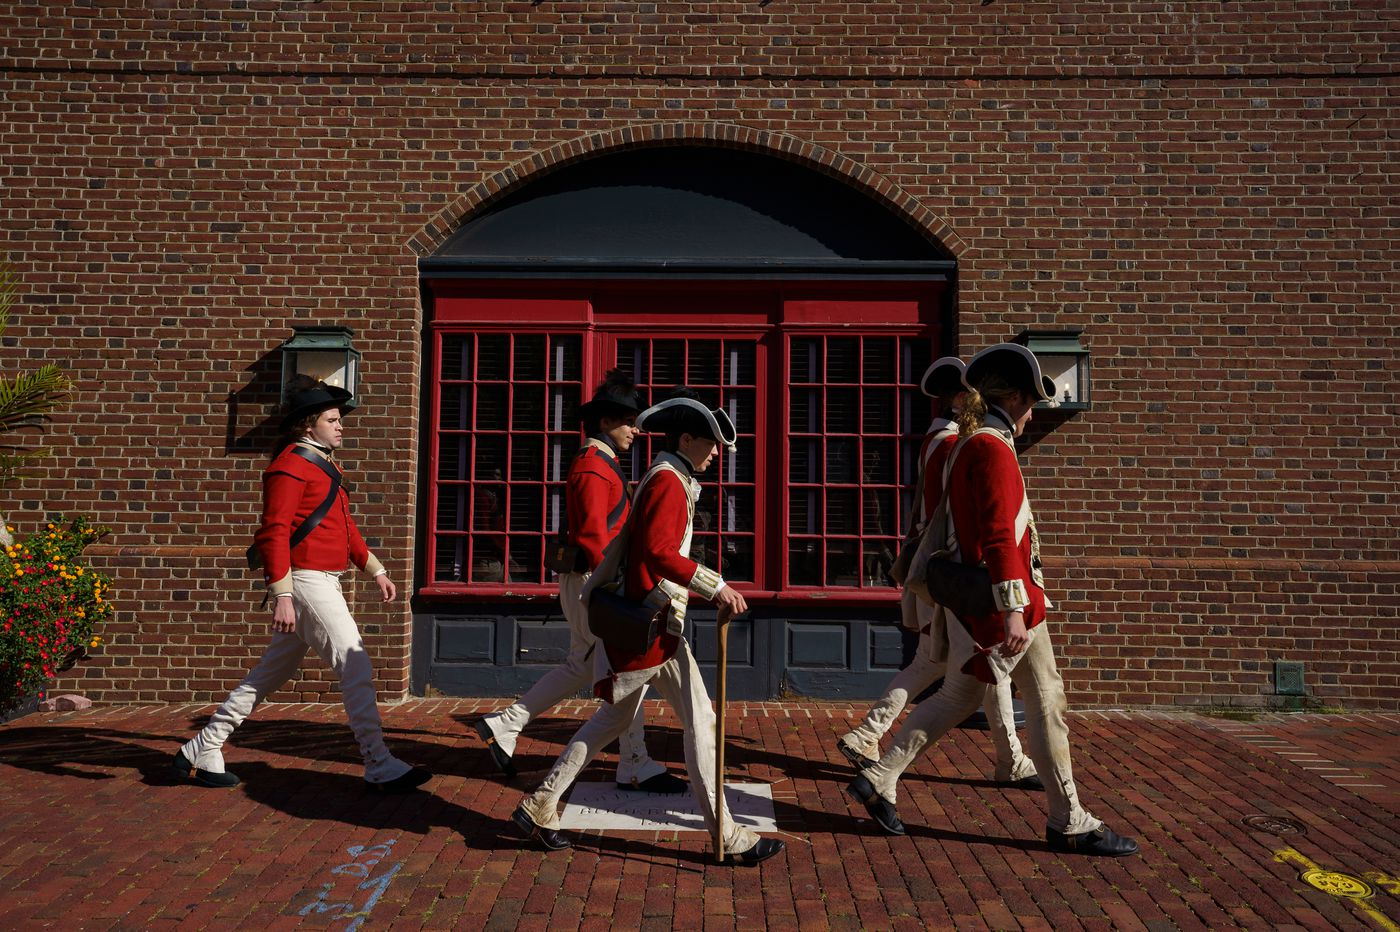 Experience Occupy Philly, Revolutionary War-style, this weekend in Old City